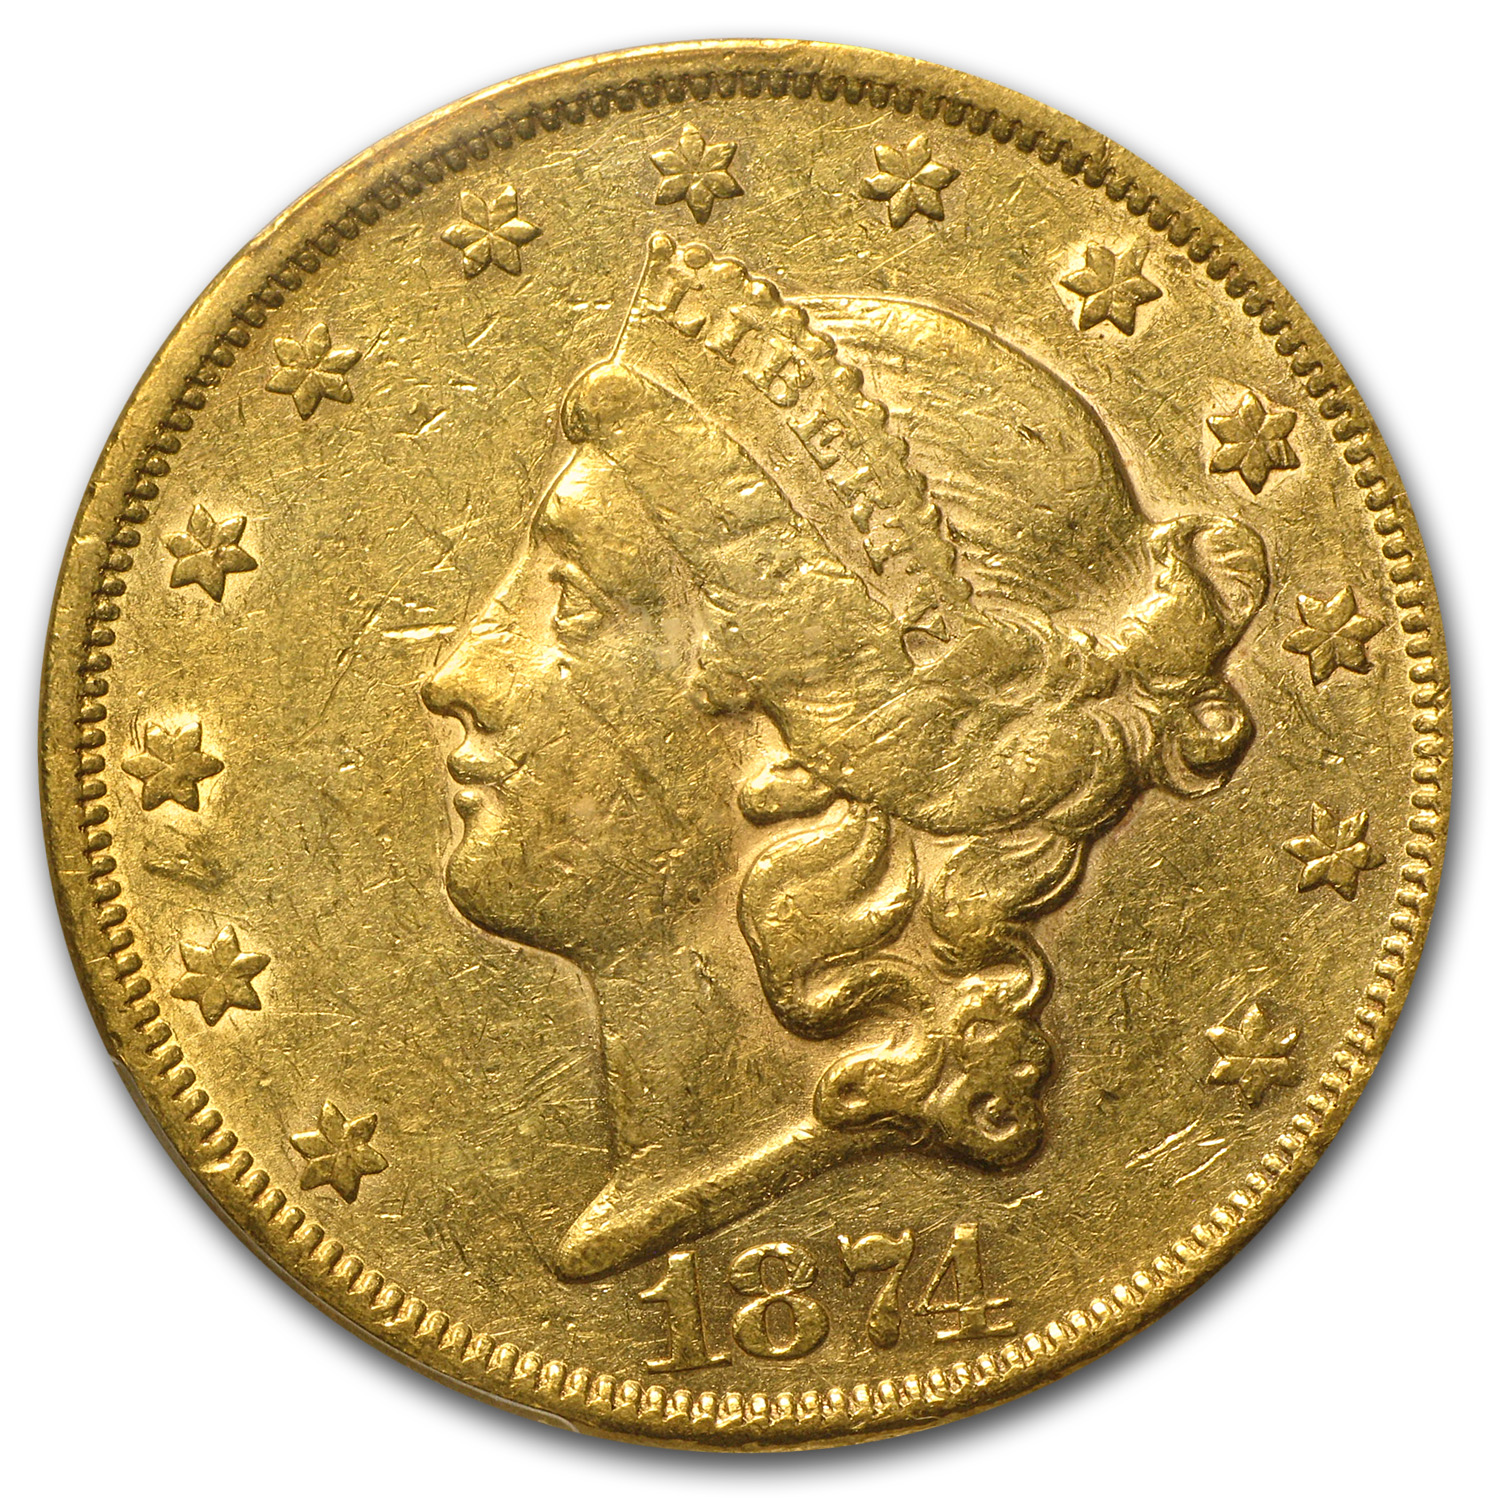 1874 $20 Gold Liberty Double Eagle - AU-50 PCGS